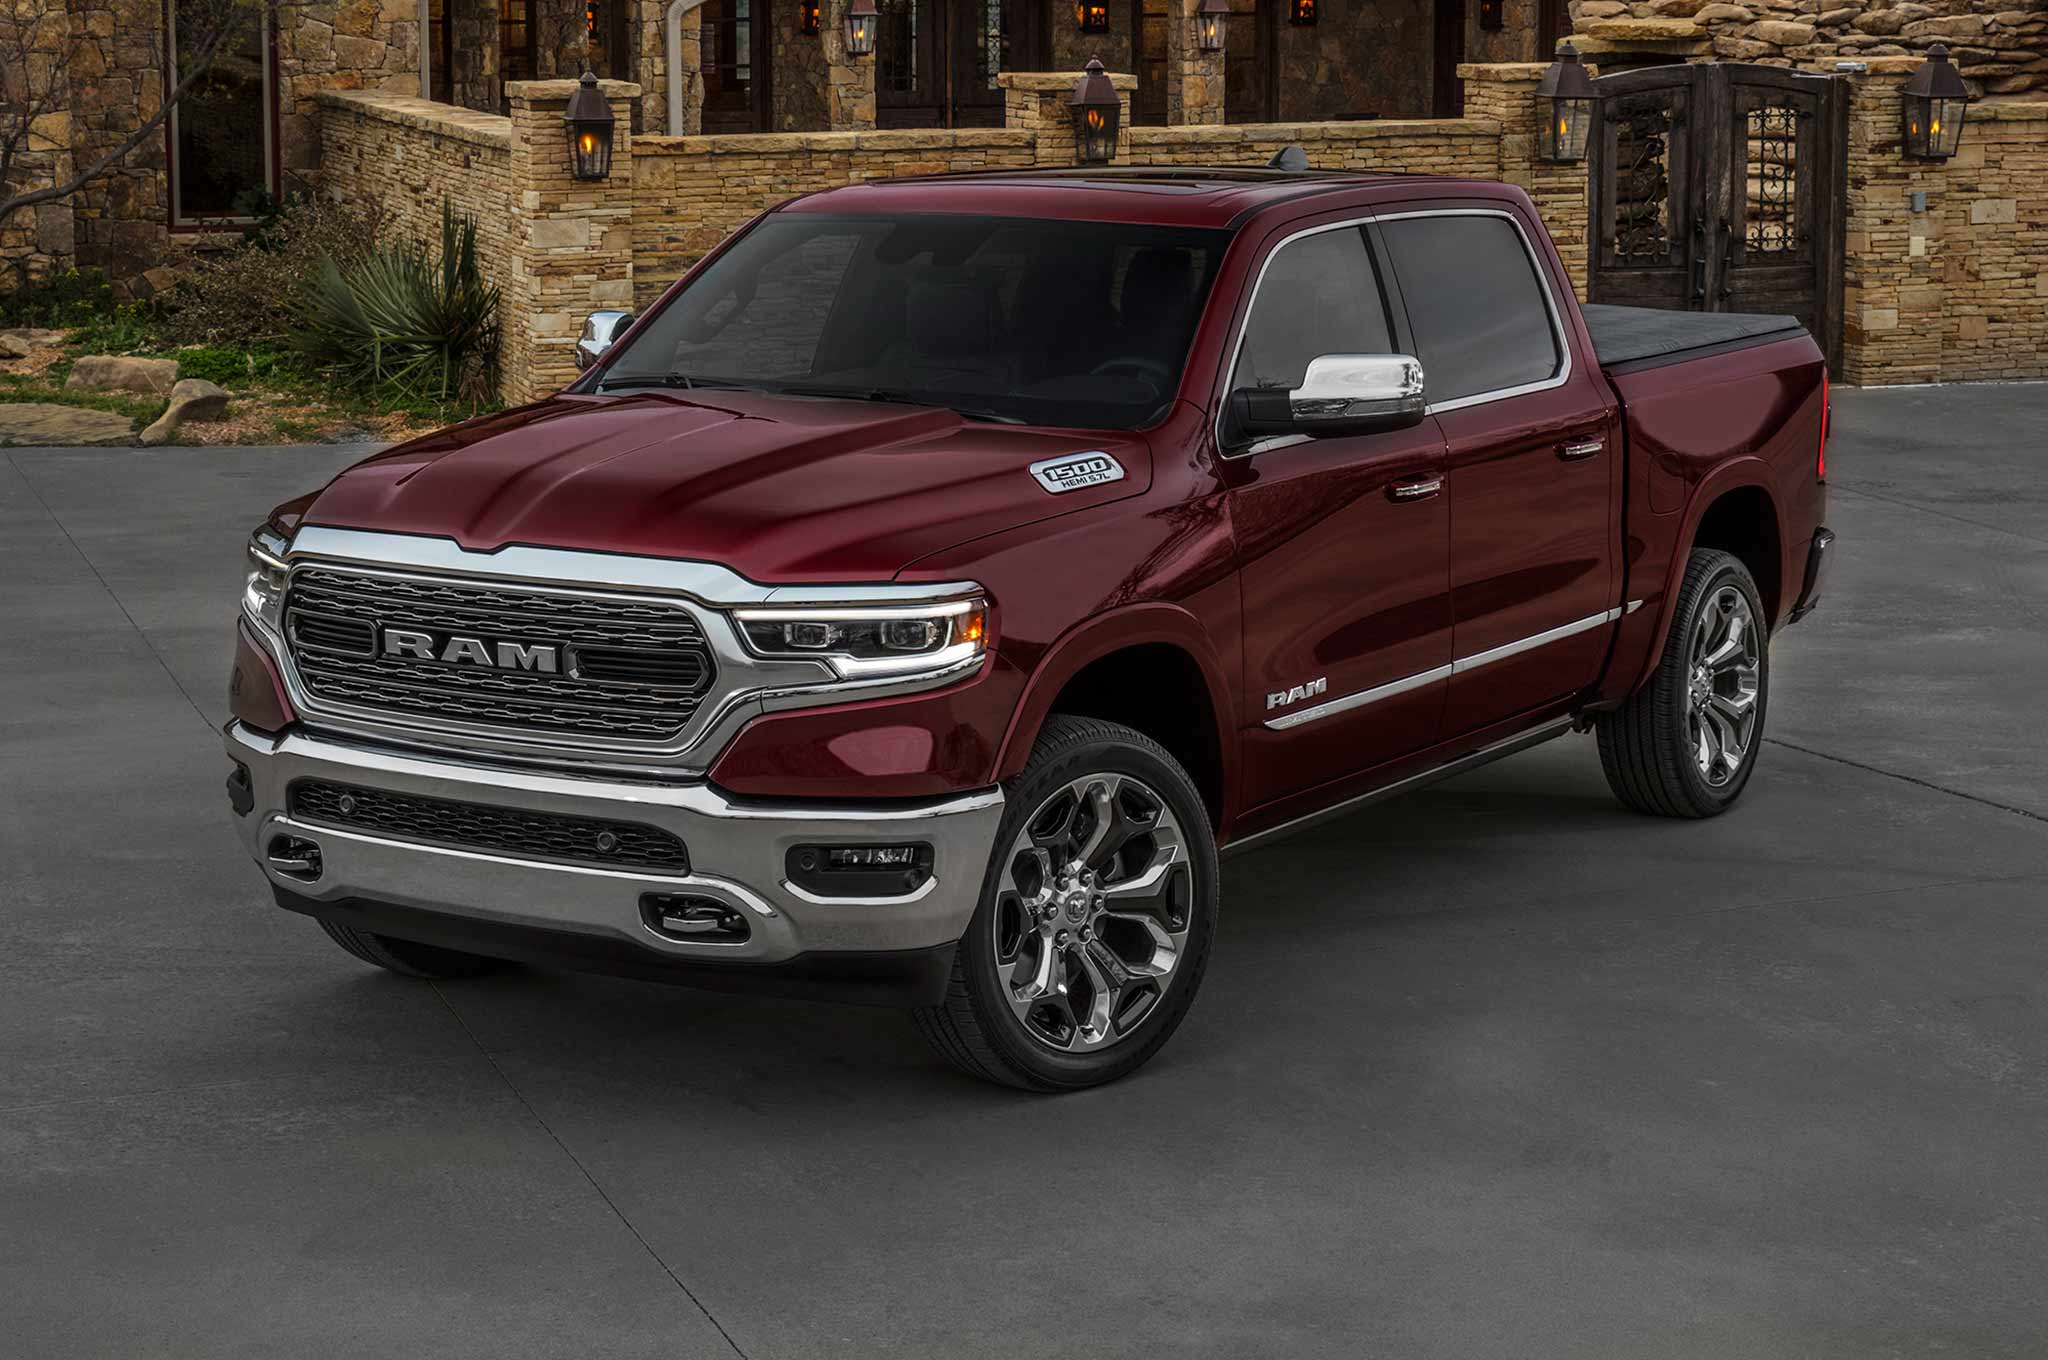 2019 Ram 1500 Limited Front Three Quarter Close Crop 01